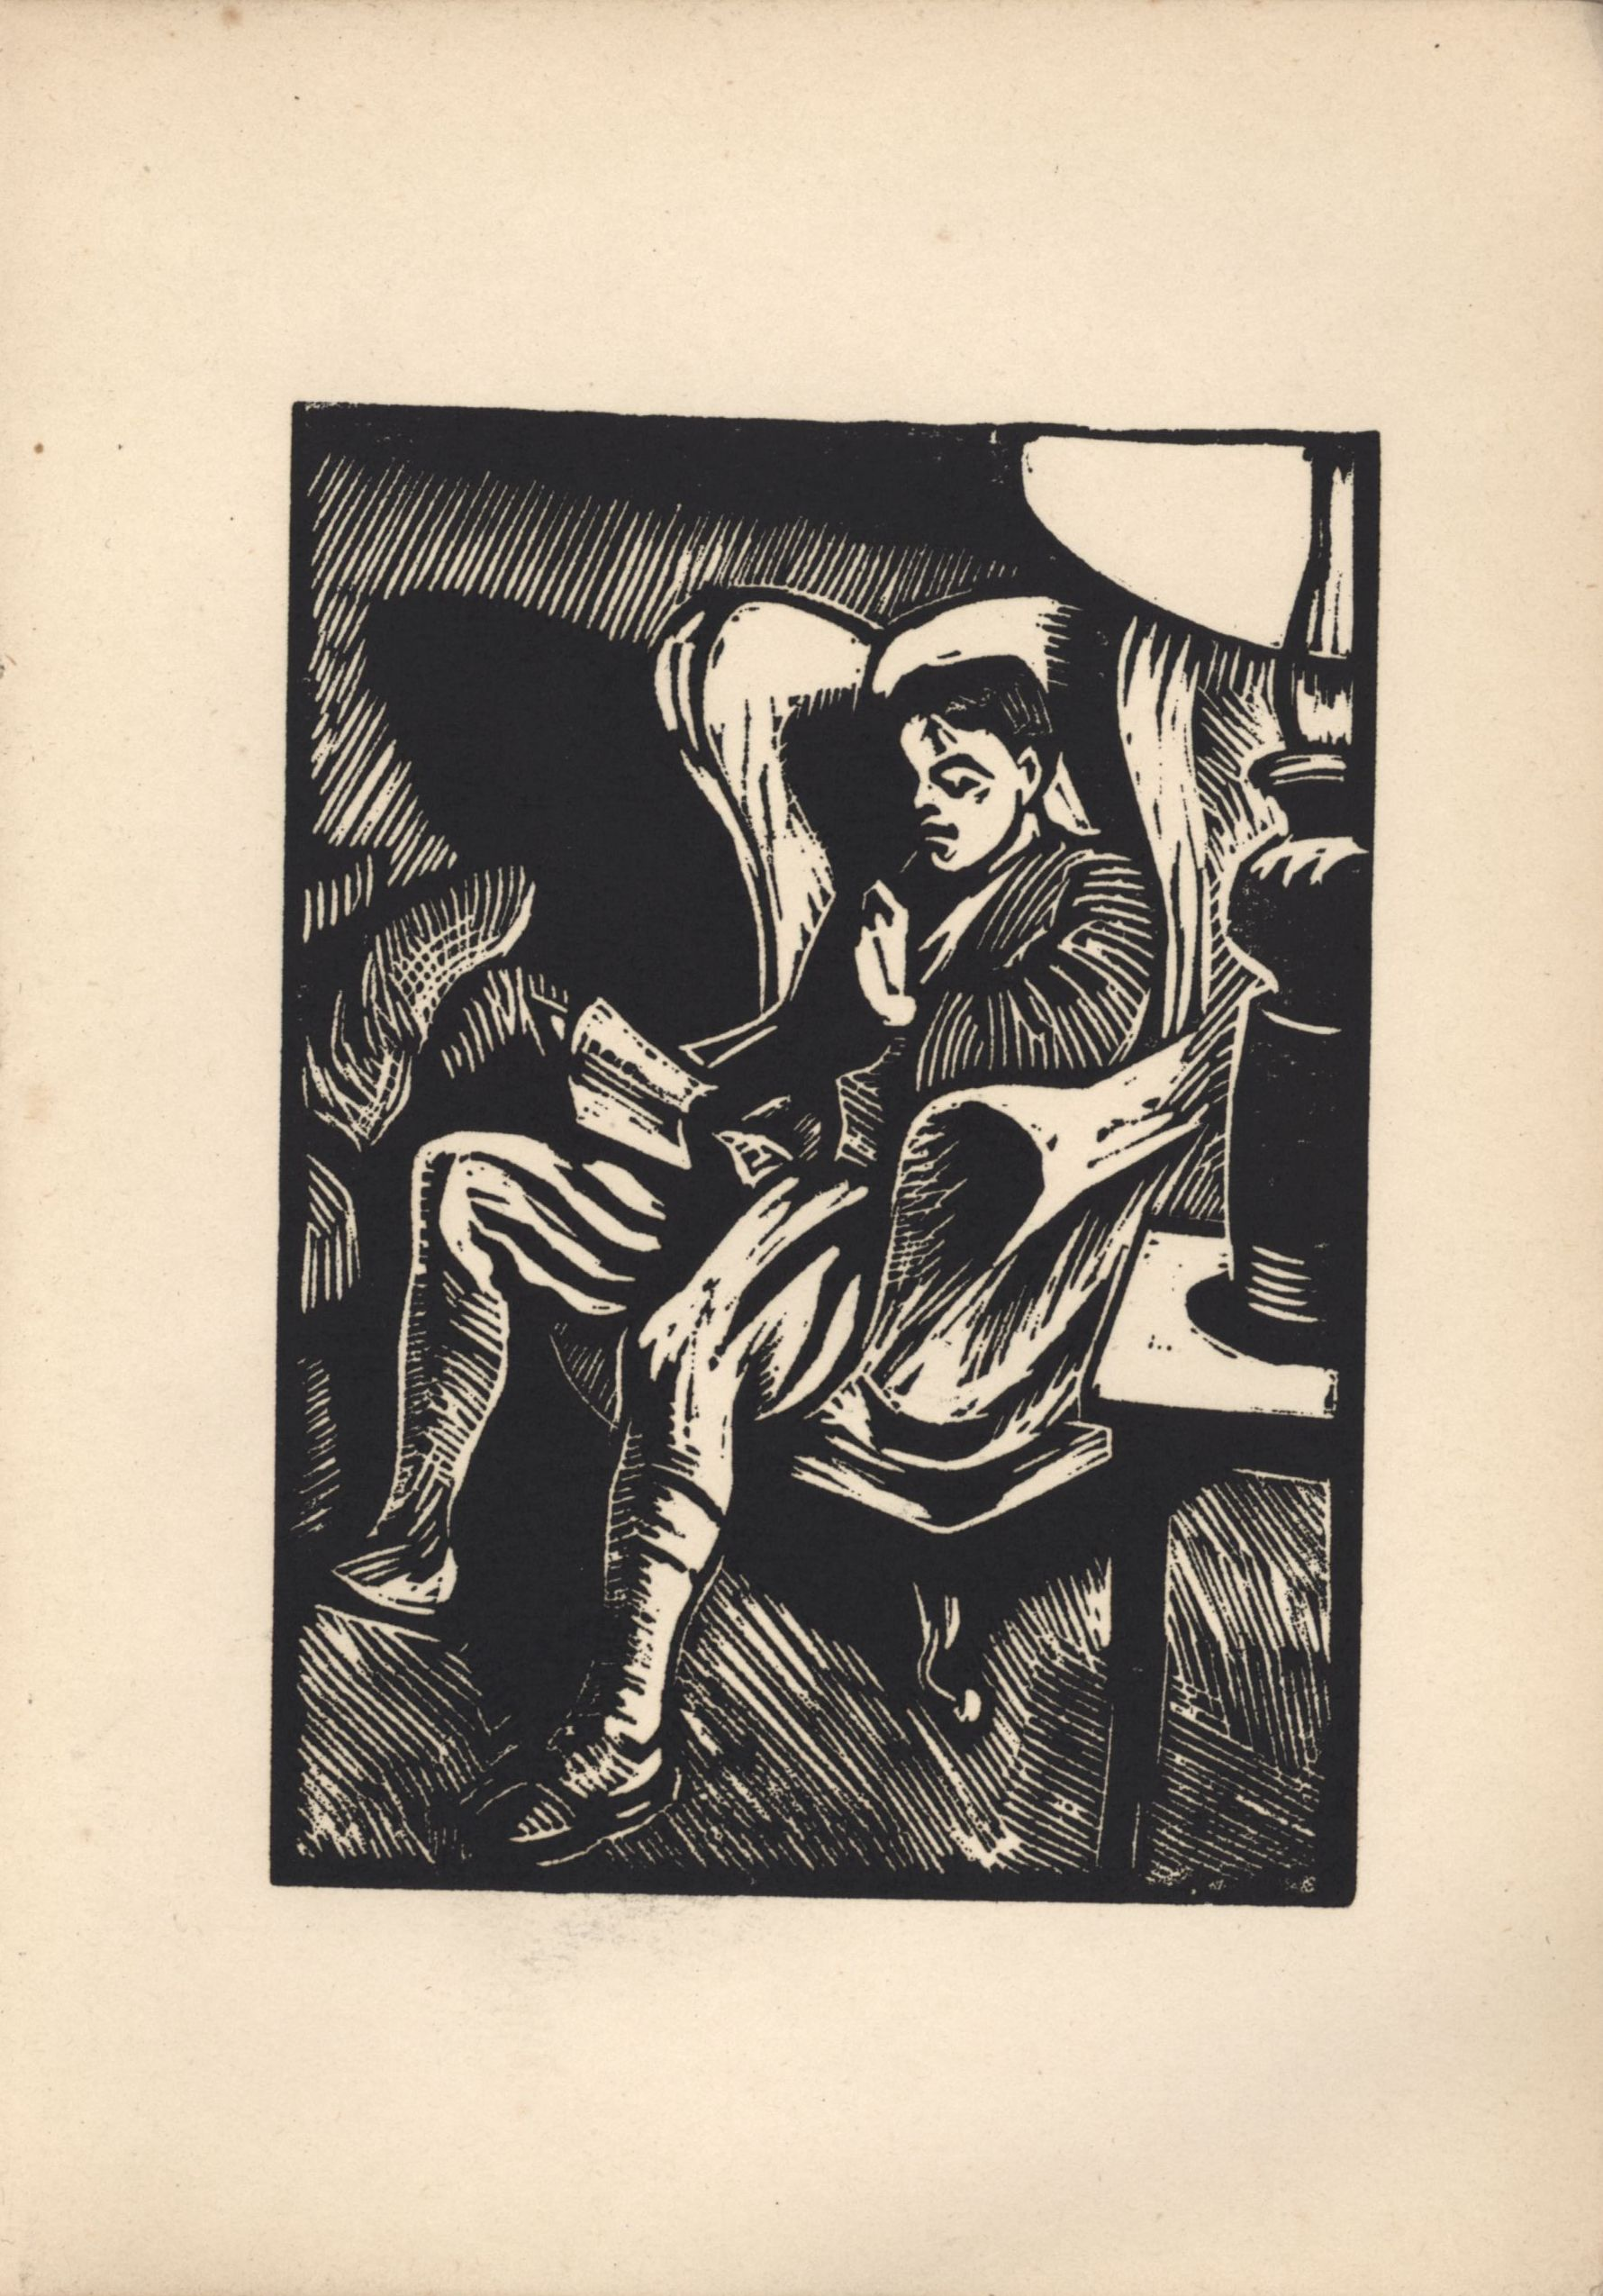 Sixth woodcut from Roger Fry's 'Twelve Original Woodcuts'.